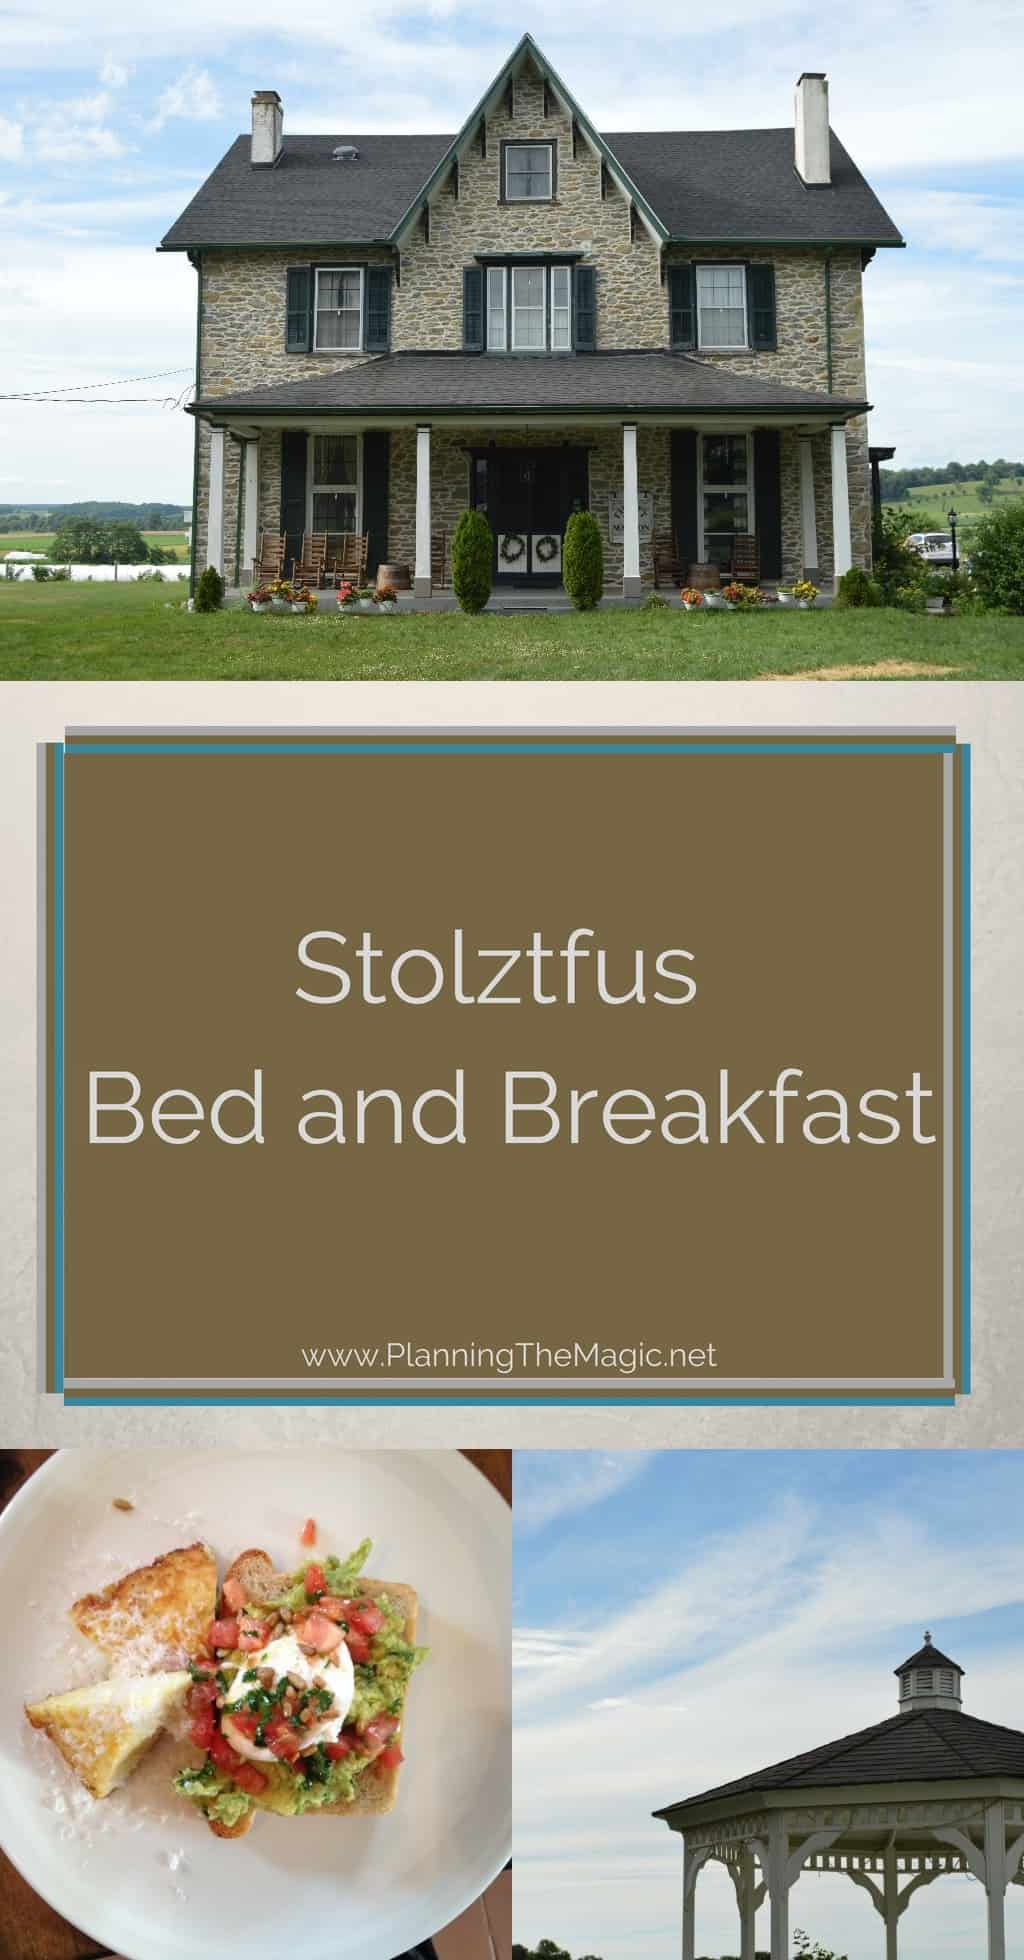 Stoltzfus Bed and Breakfast